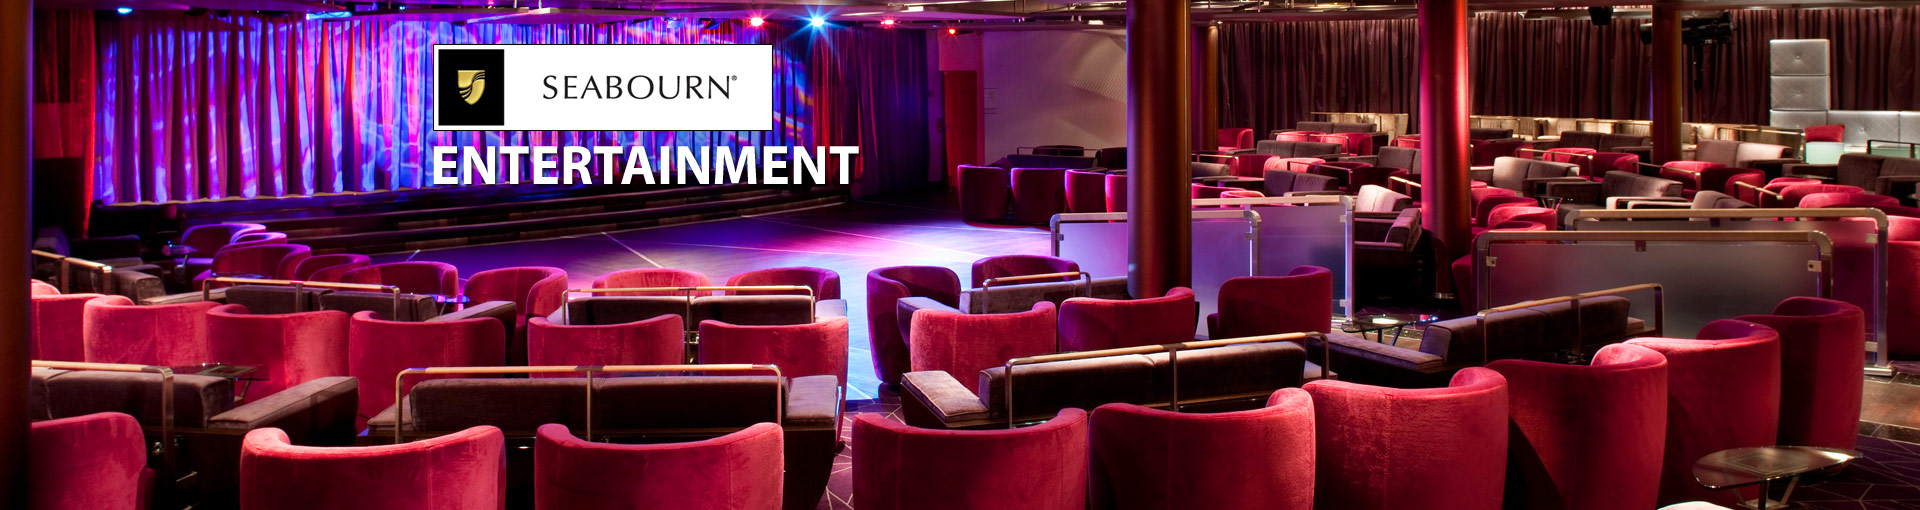 Seabourn Cruise Line Entertainment